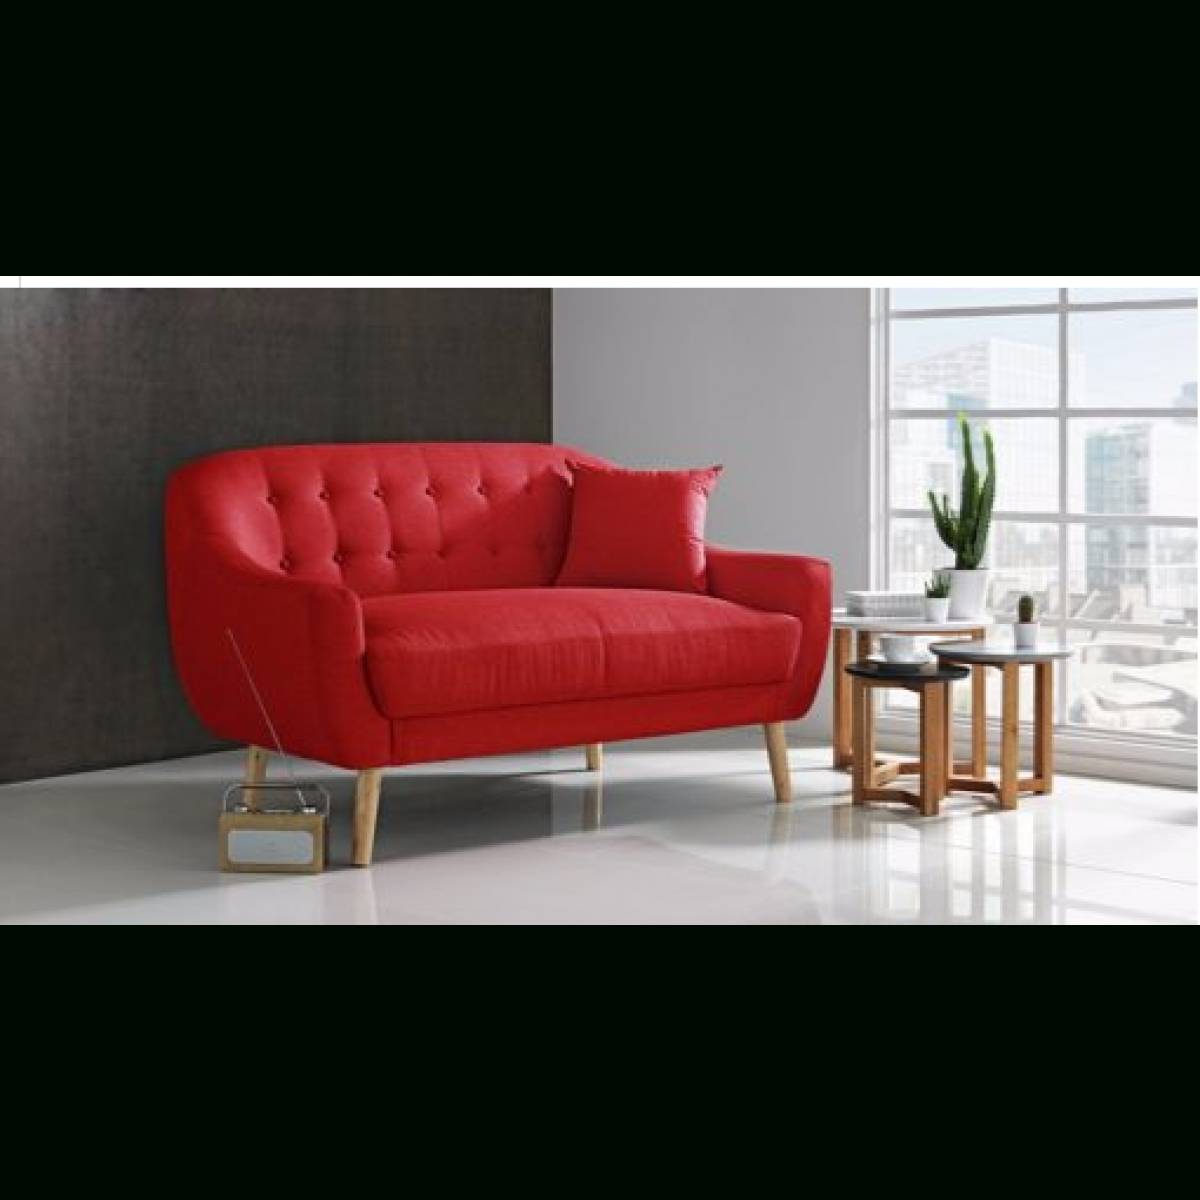 2019 Fabric Sofas Within Hygena Lexie Retro Compact Fabric 2 Seater Sofa – Poppy Red (View 18 of 20)